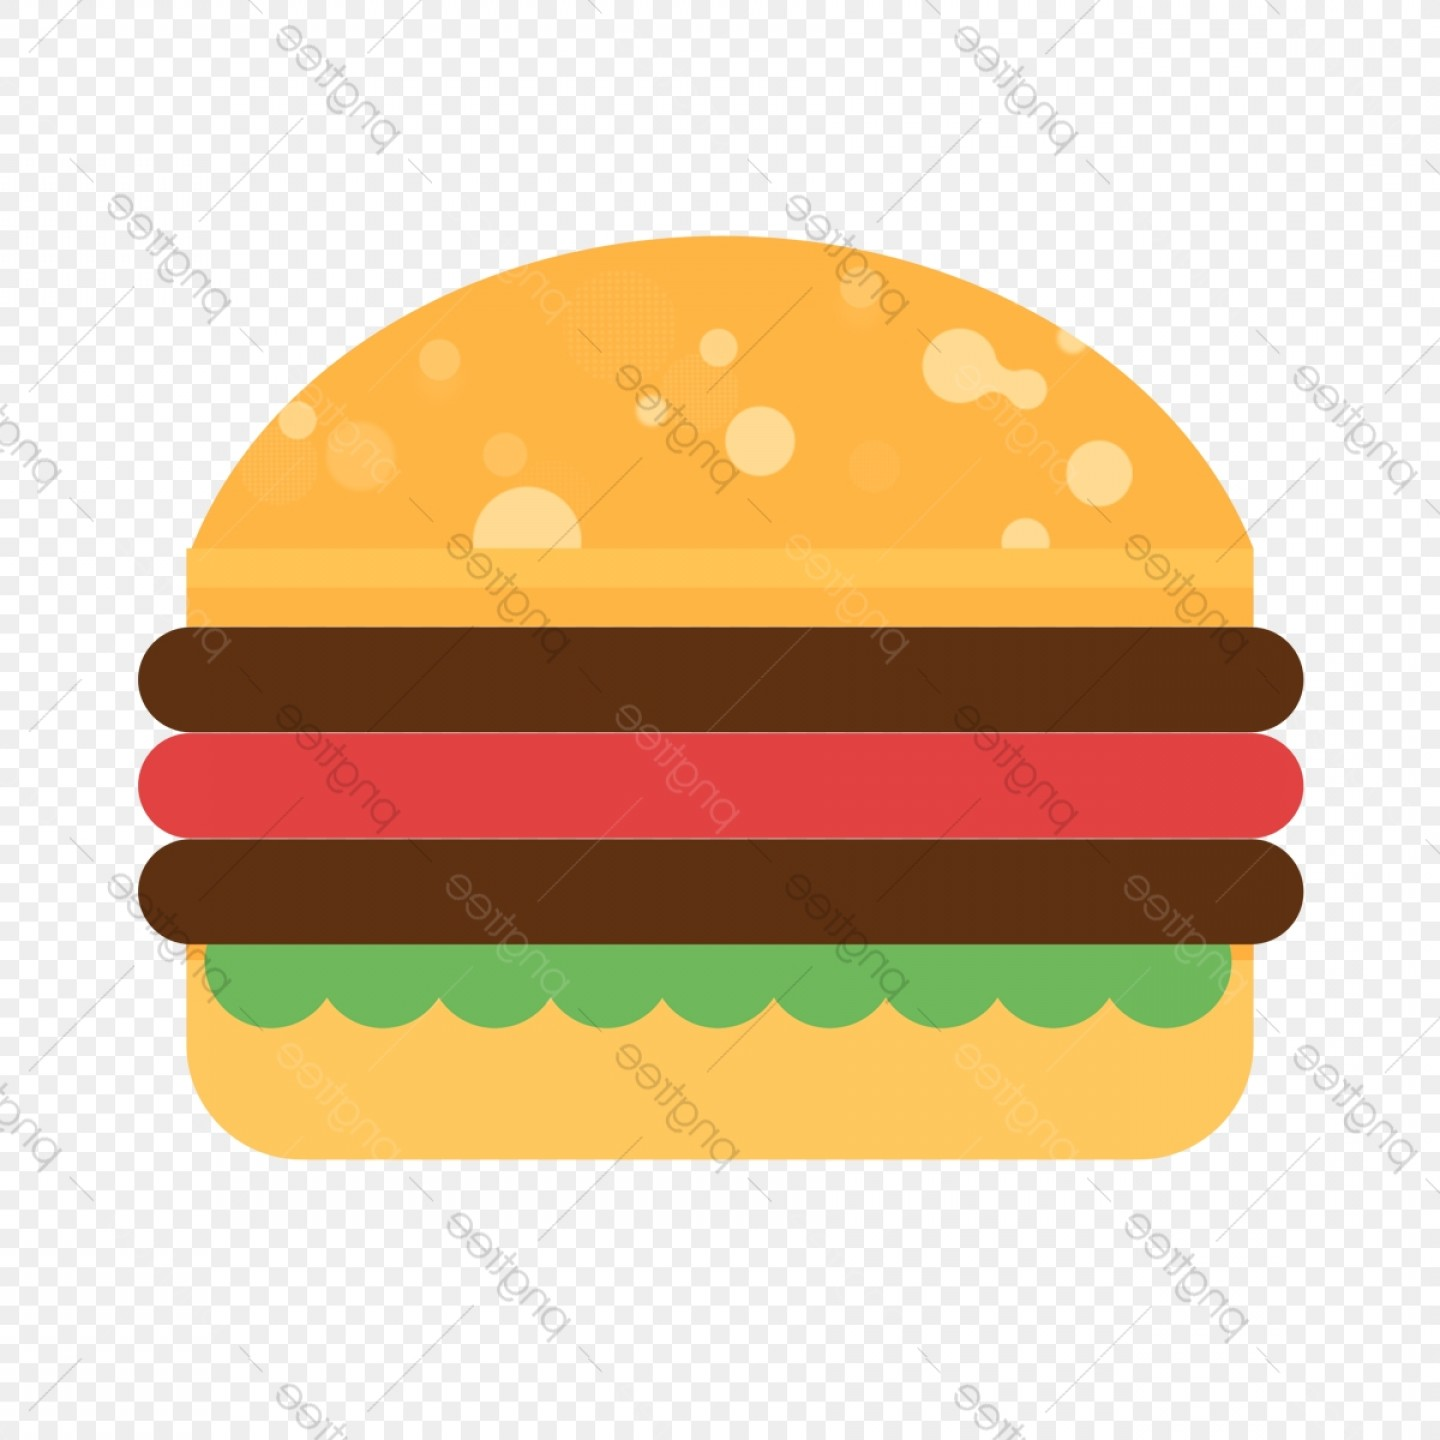 Snack Vector: Meat And Snack Vector Design